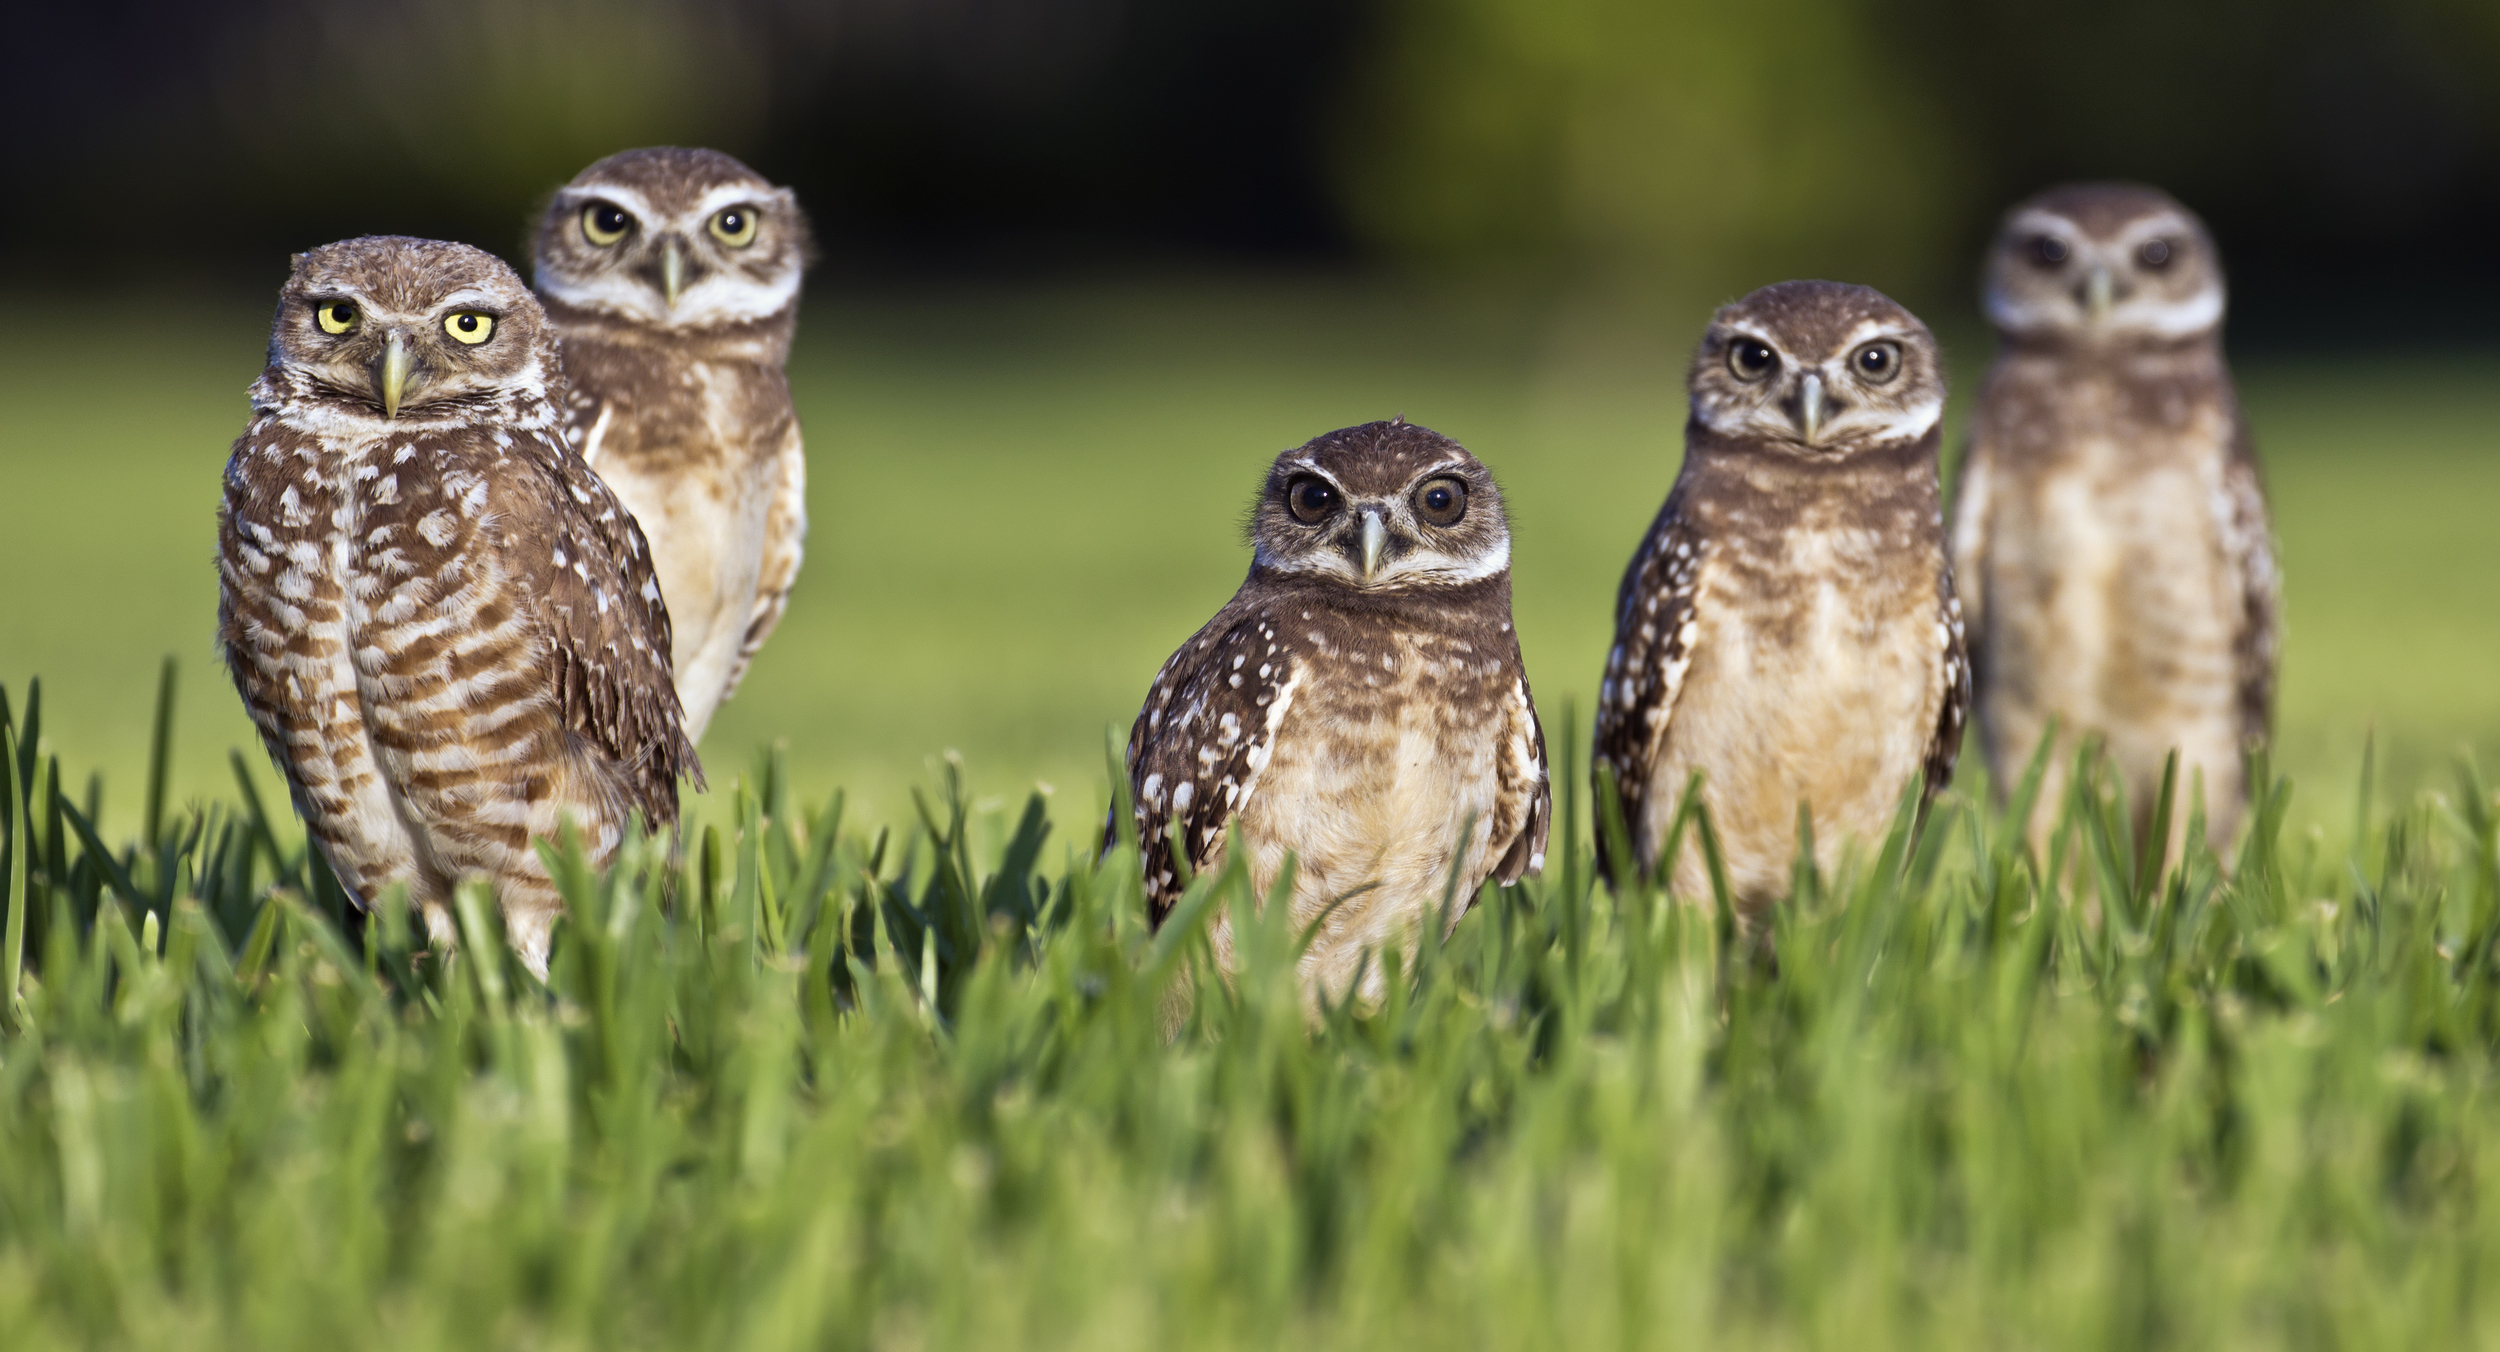 """"""" Five Burrowing Owls  Athene cunicularia floridana , Florida """" by  travelwayoflife  is licensed under  CC BY-SA 2.0 ."""